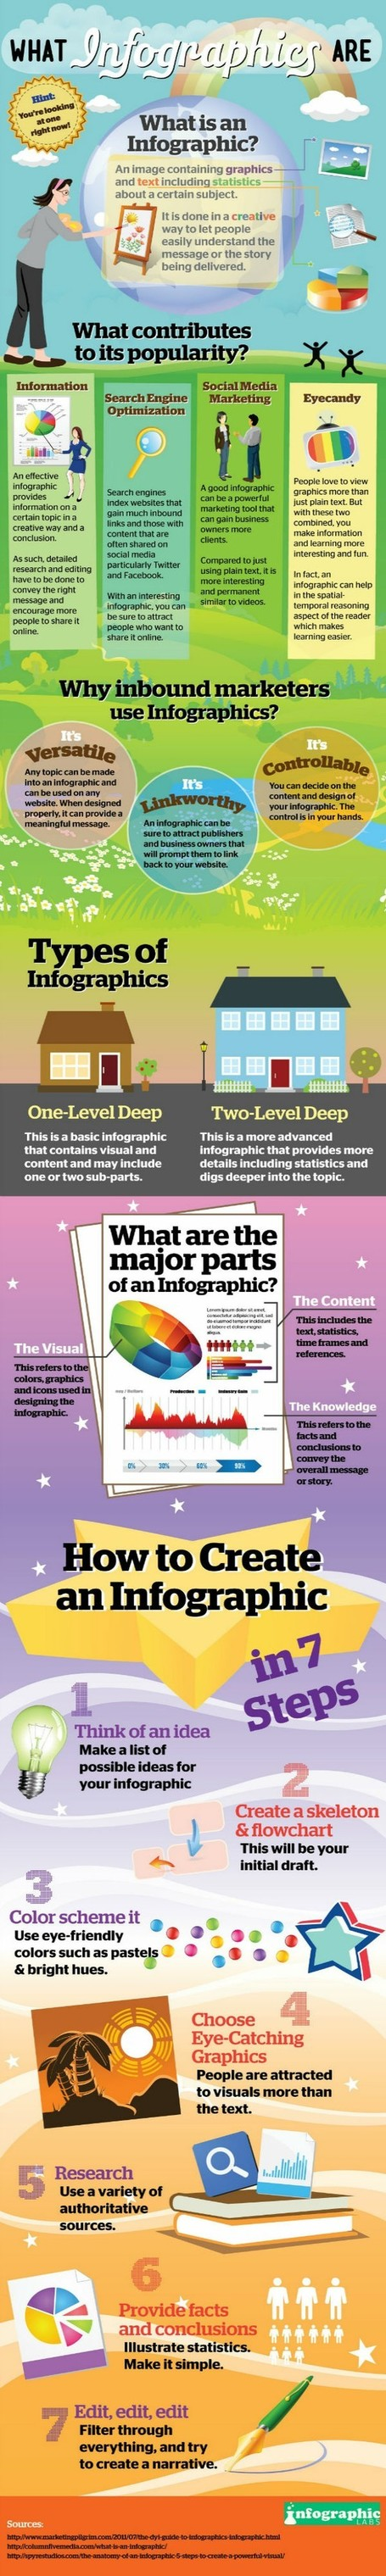 A world of Infography & Data Visualisation | CRAW | Scoop.it